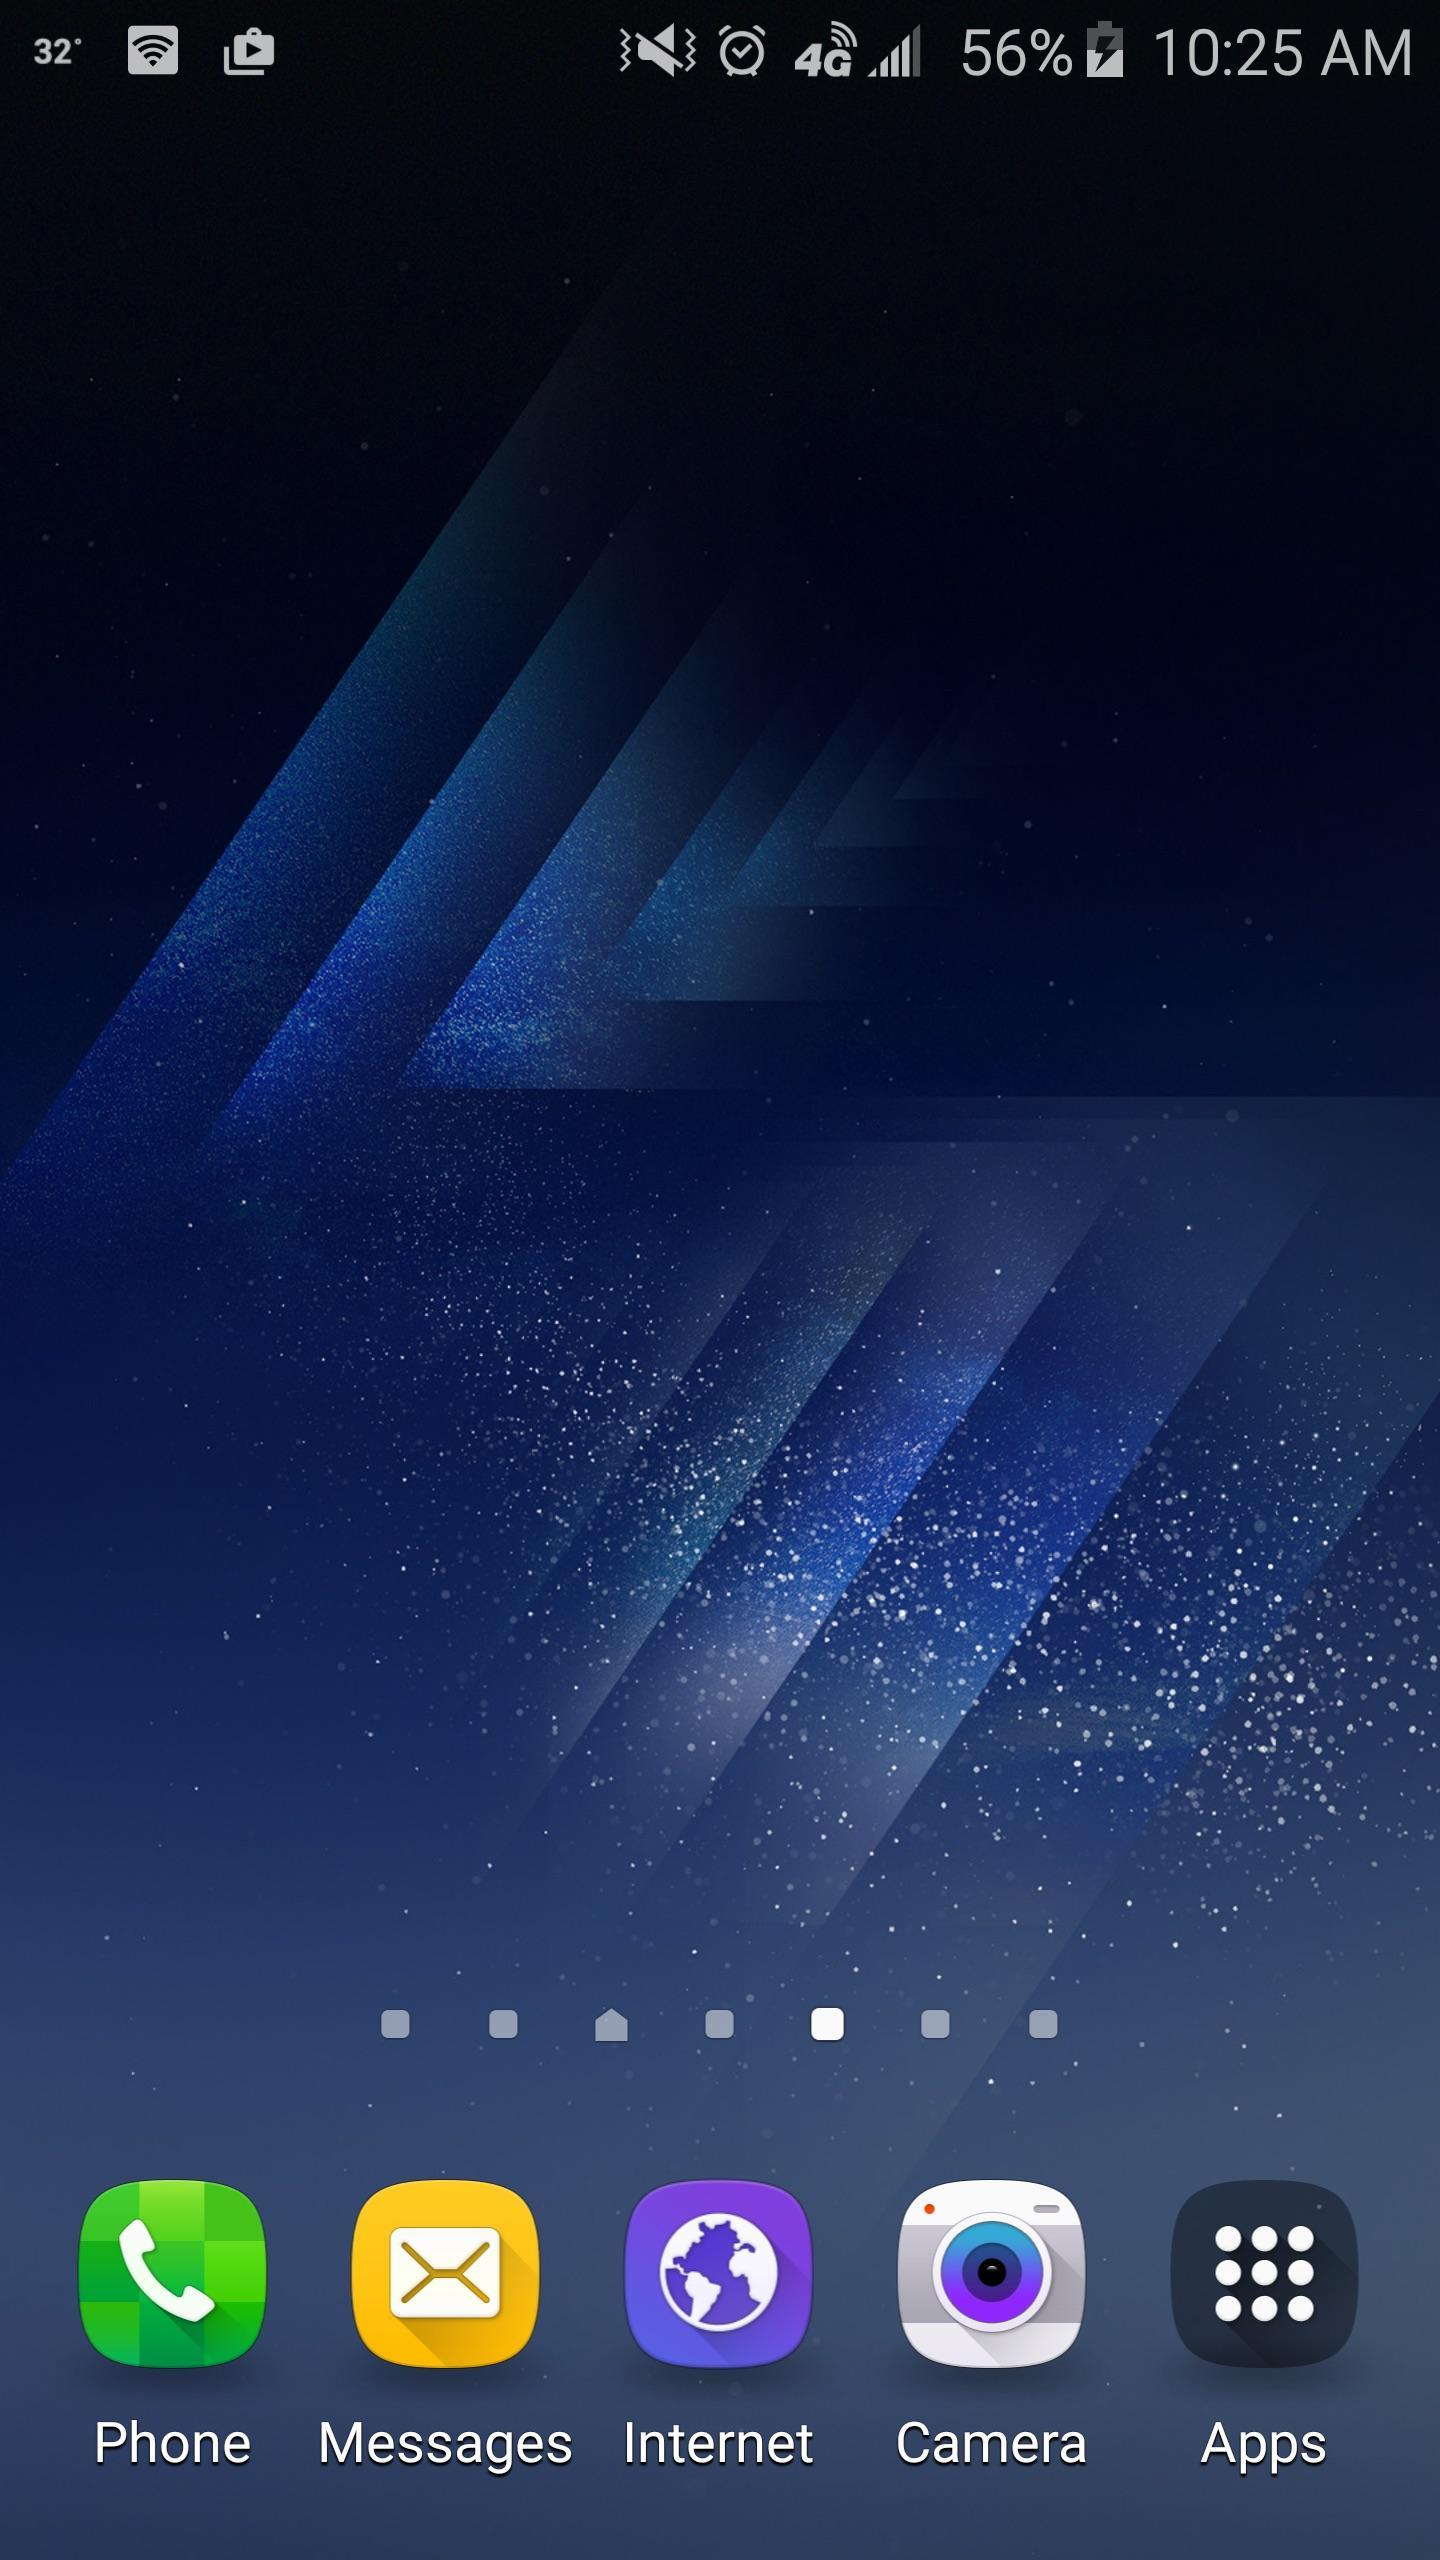 Galaxy S8 S8 Plus Wallpapers For Android Apk Download